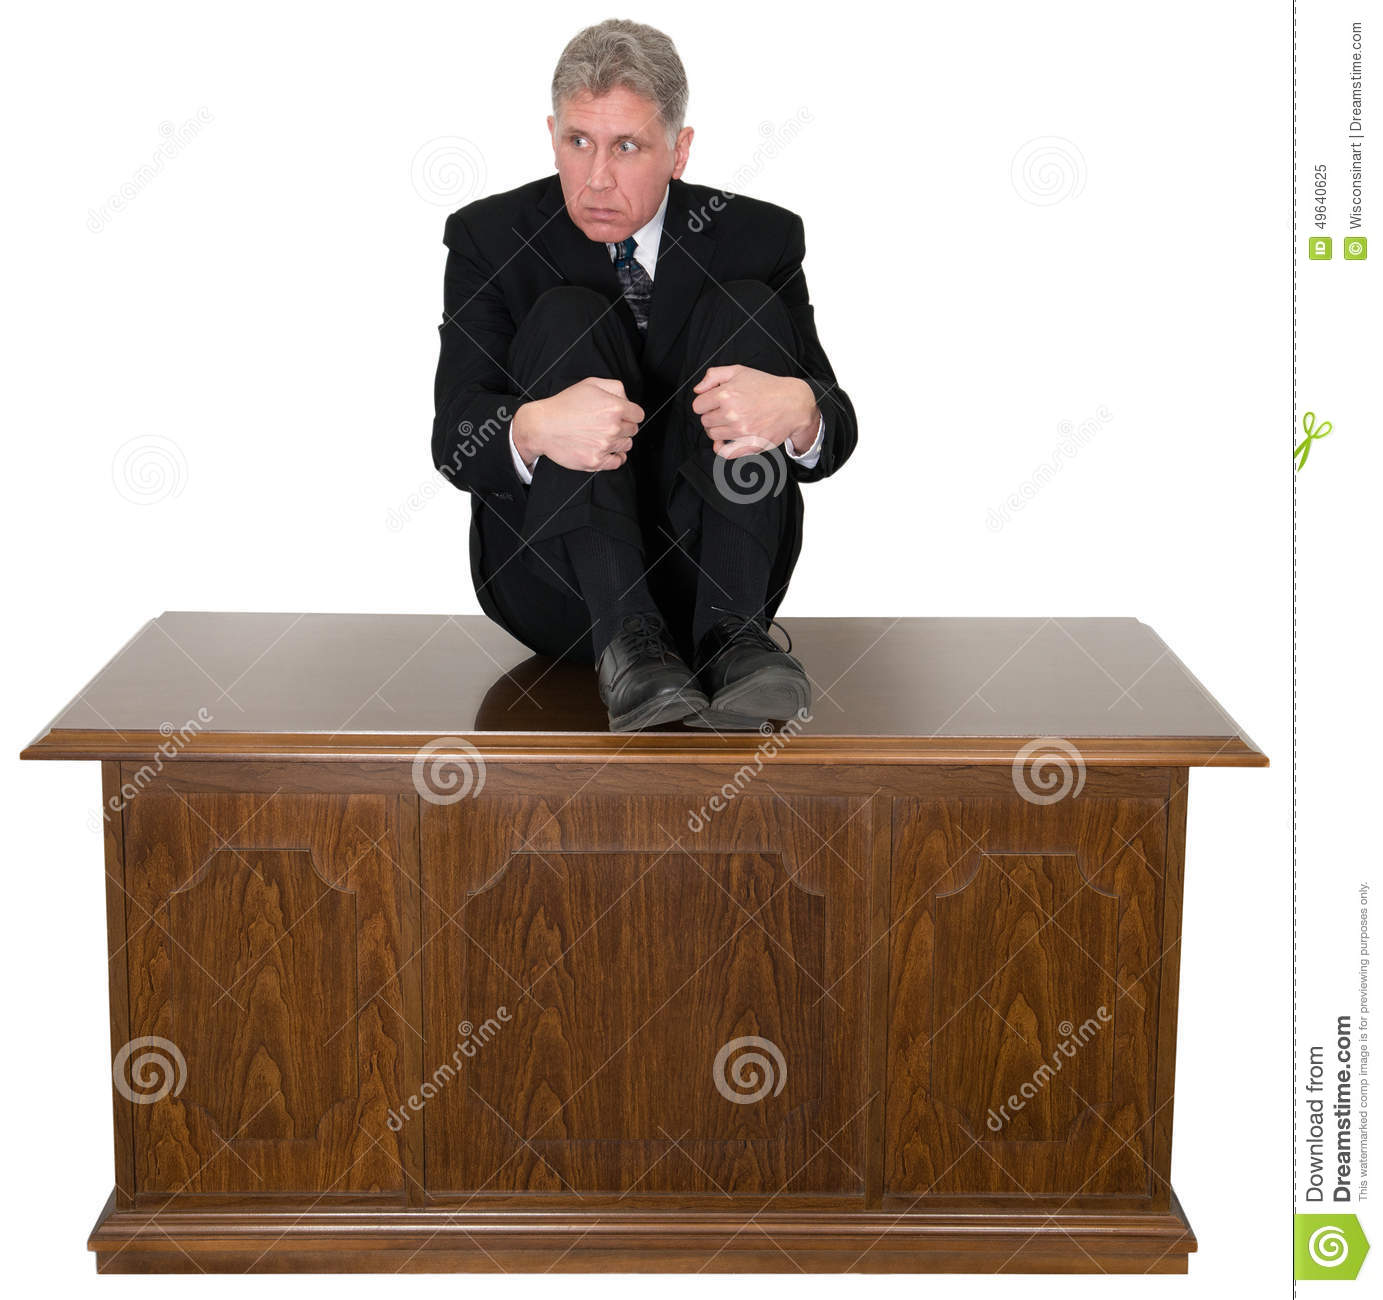 Funny Scared Businessman Office Desk Stock Image - Image: 49640625